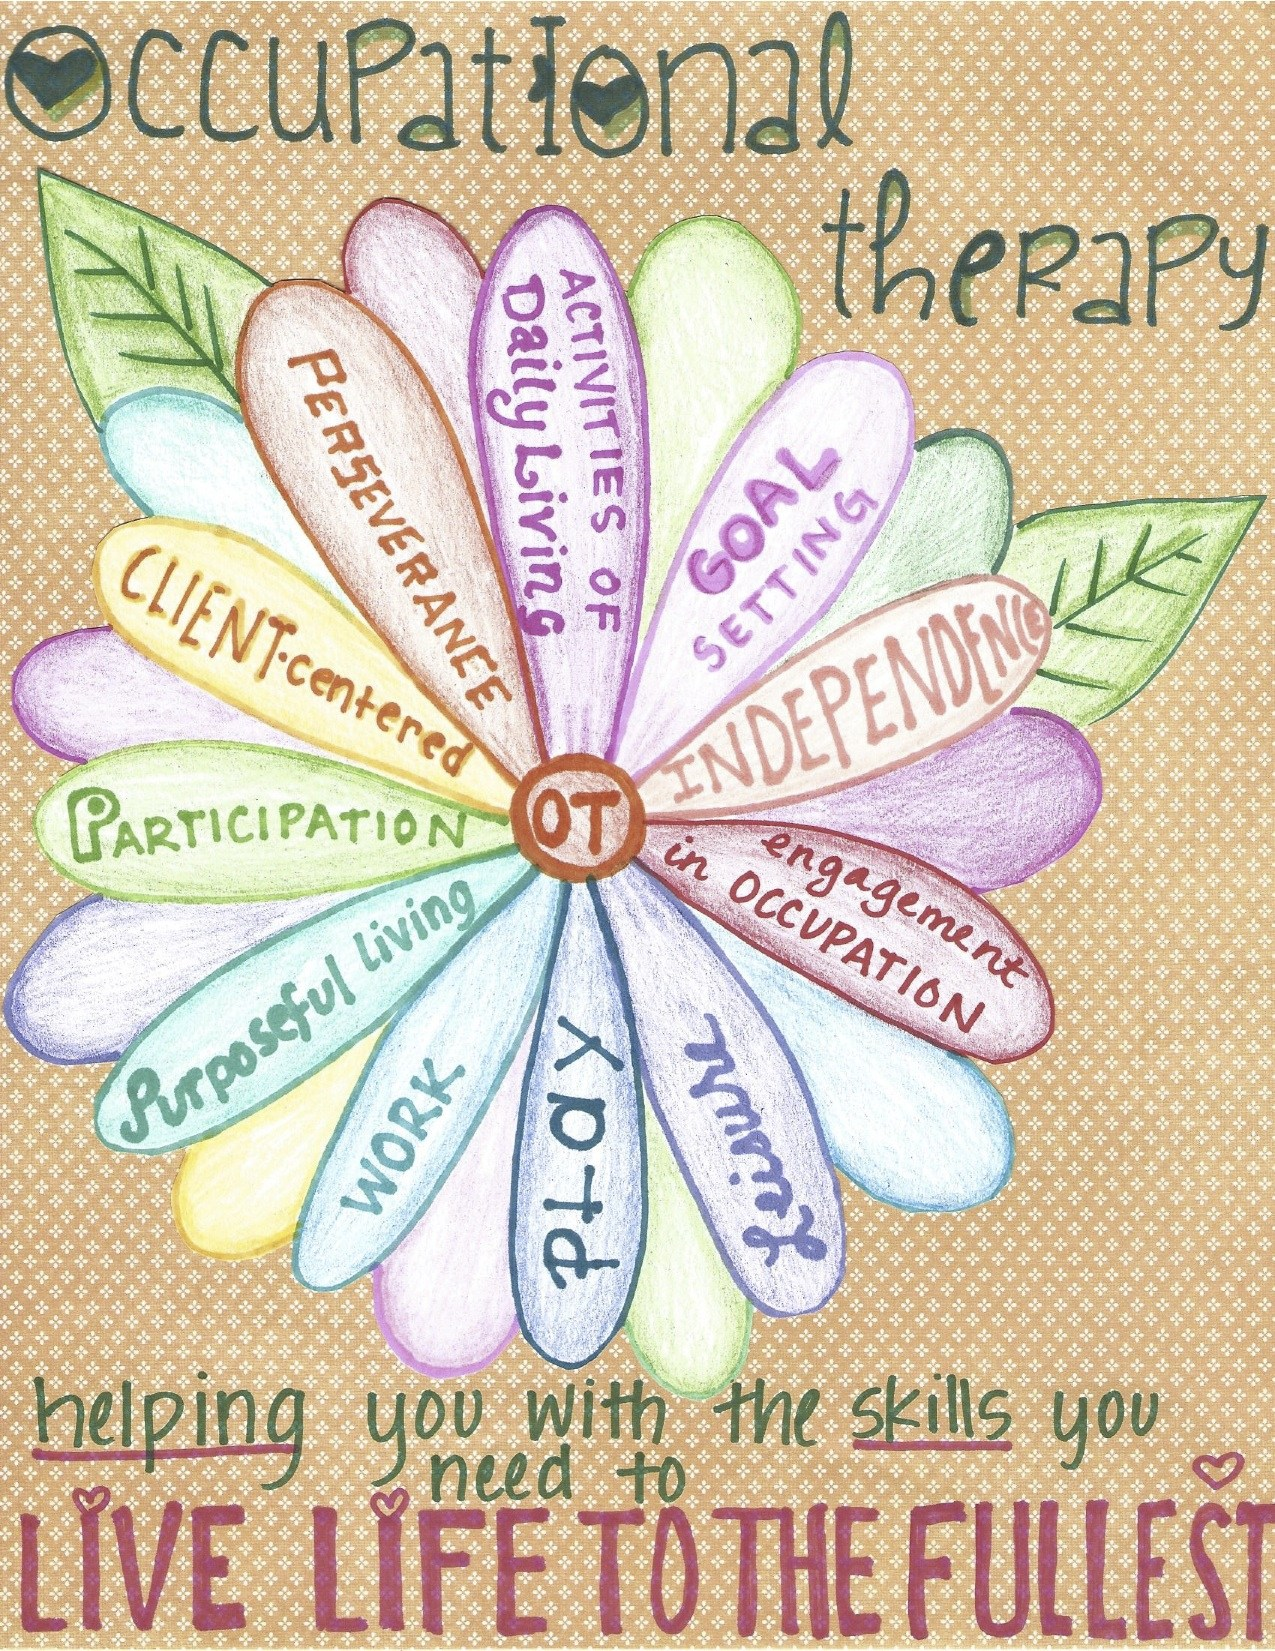 Occupational Therapy - Live life to the fullest